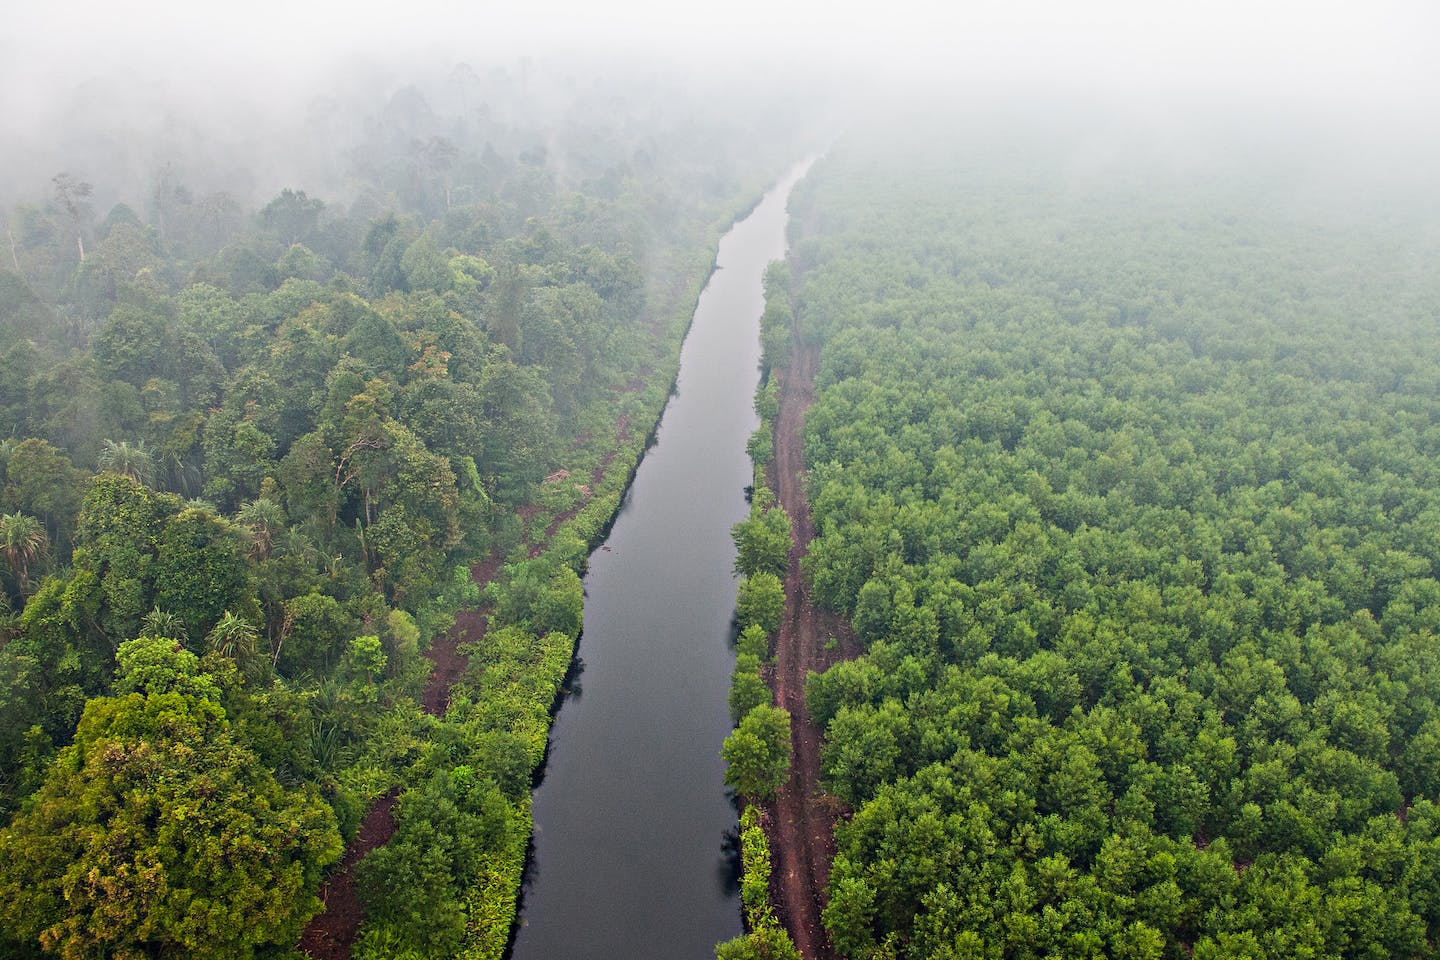 Haze air pollution from burning peatlands blankets the landscape in Riau